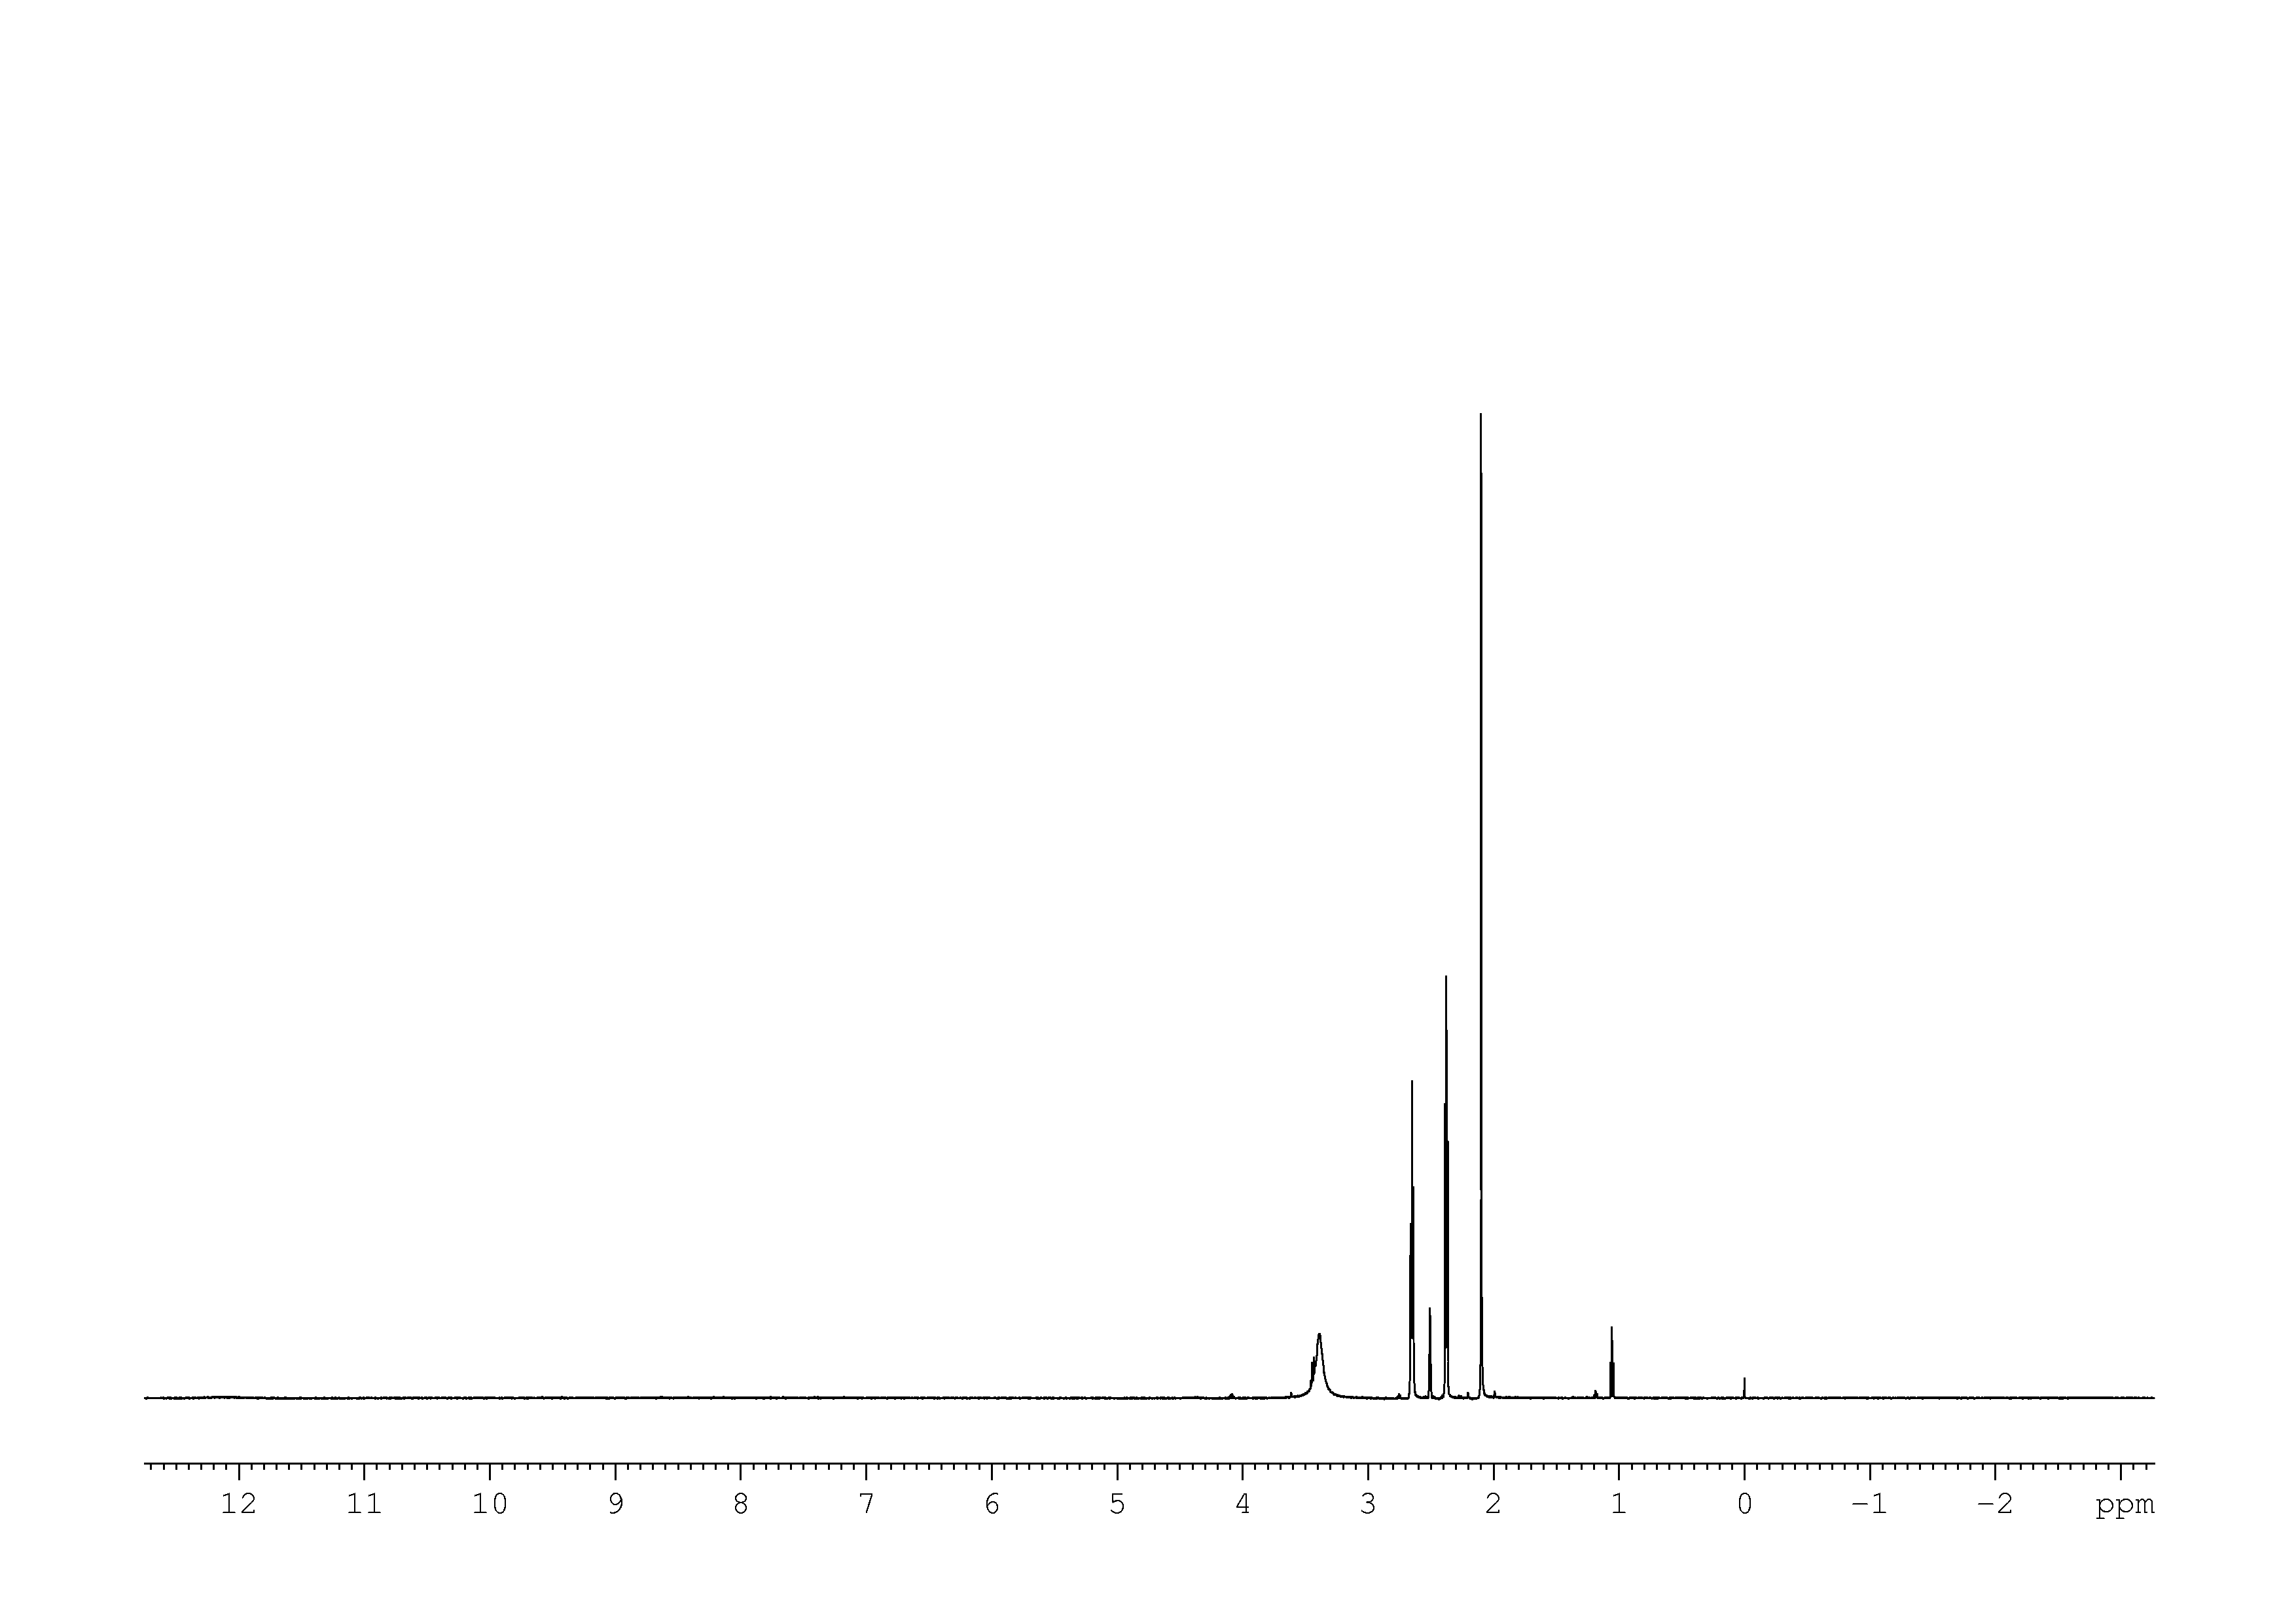 1D 1H, n/a spectrum for 2,3-dihydro-2-oxofuran-5-acetate